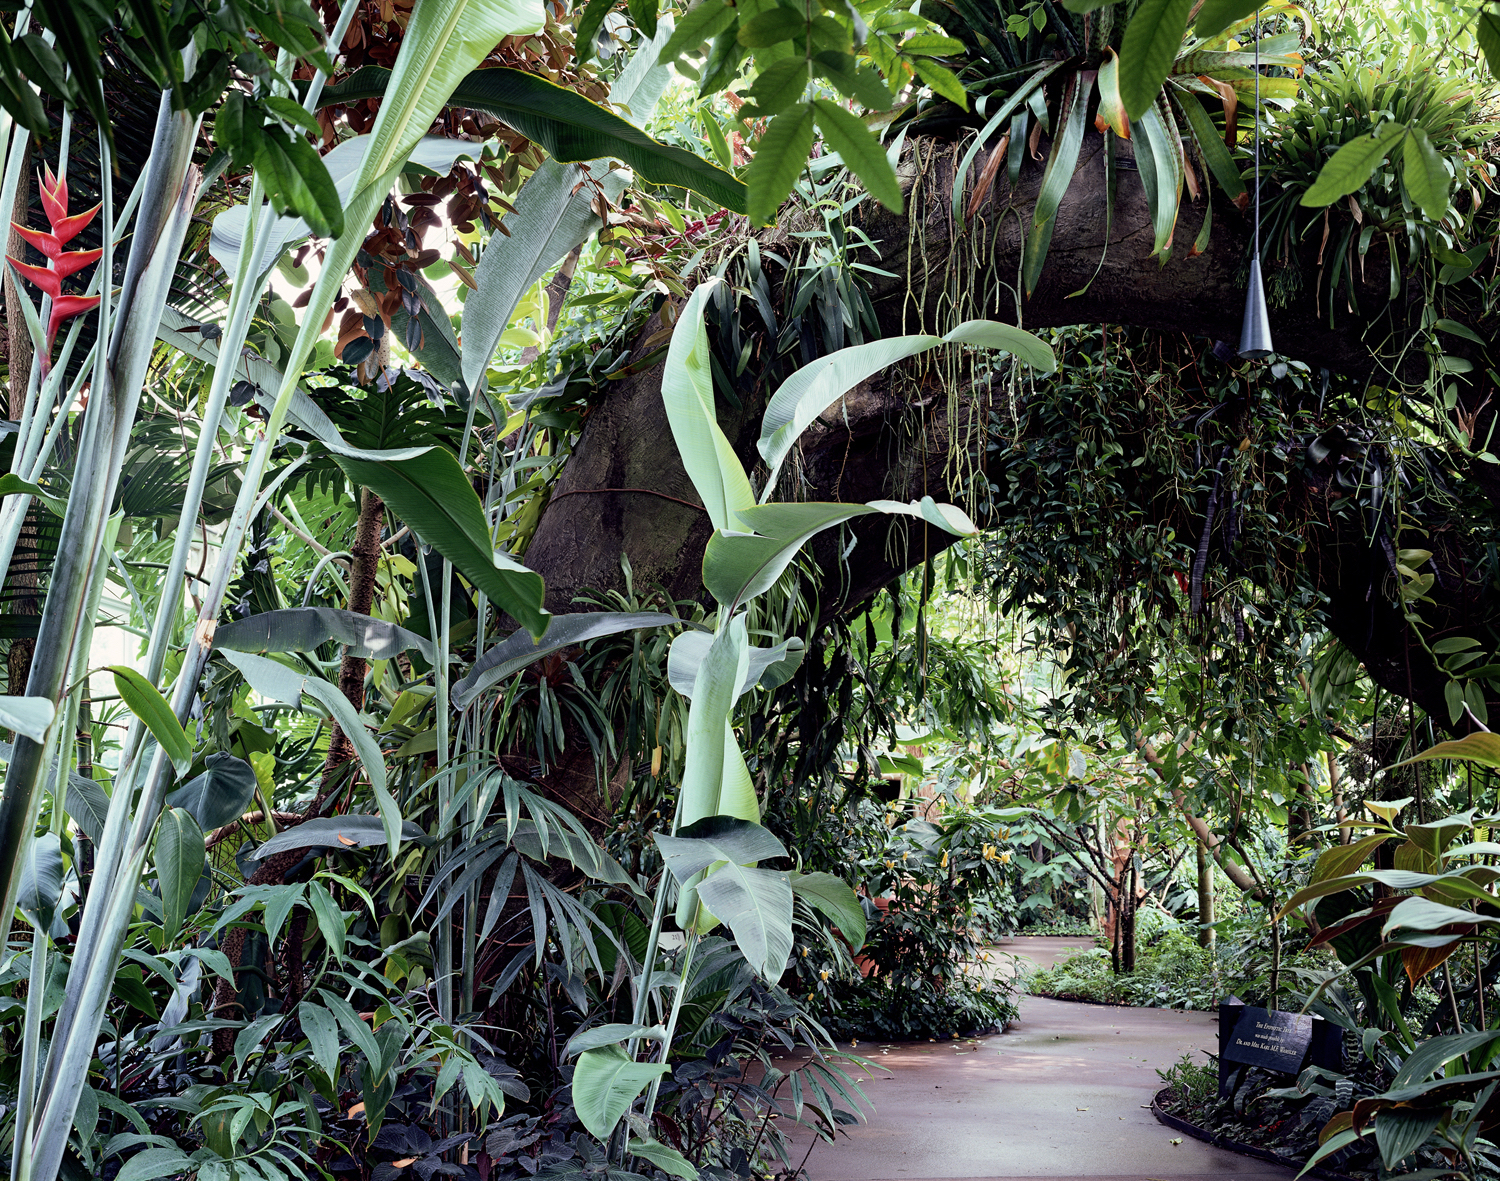 Lowland Tropical Rain Forest Gallery in Conservatory